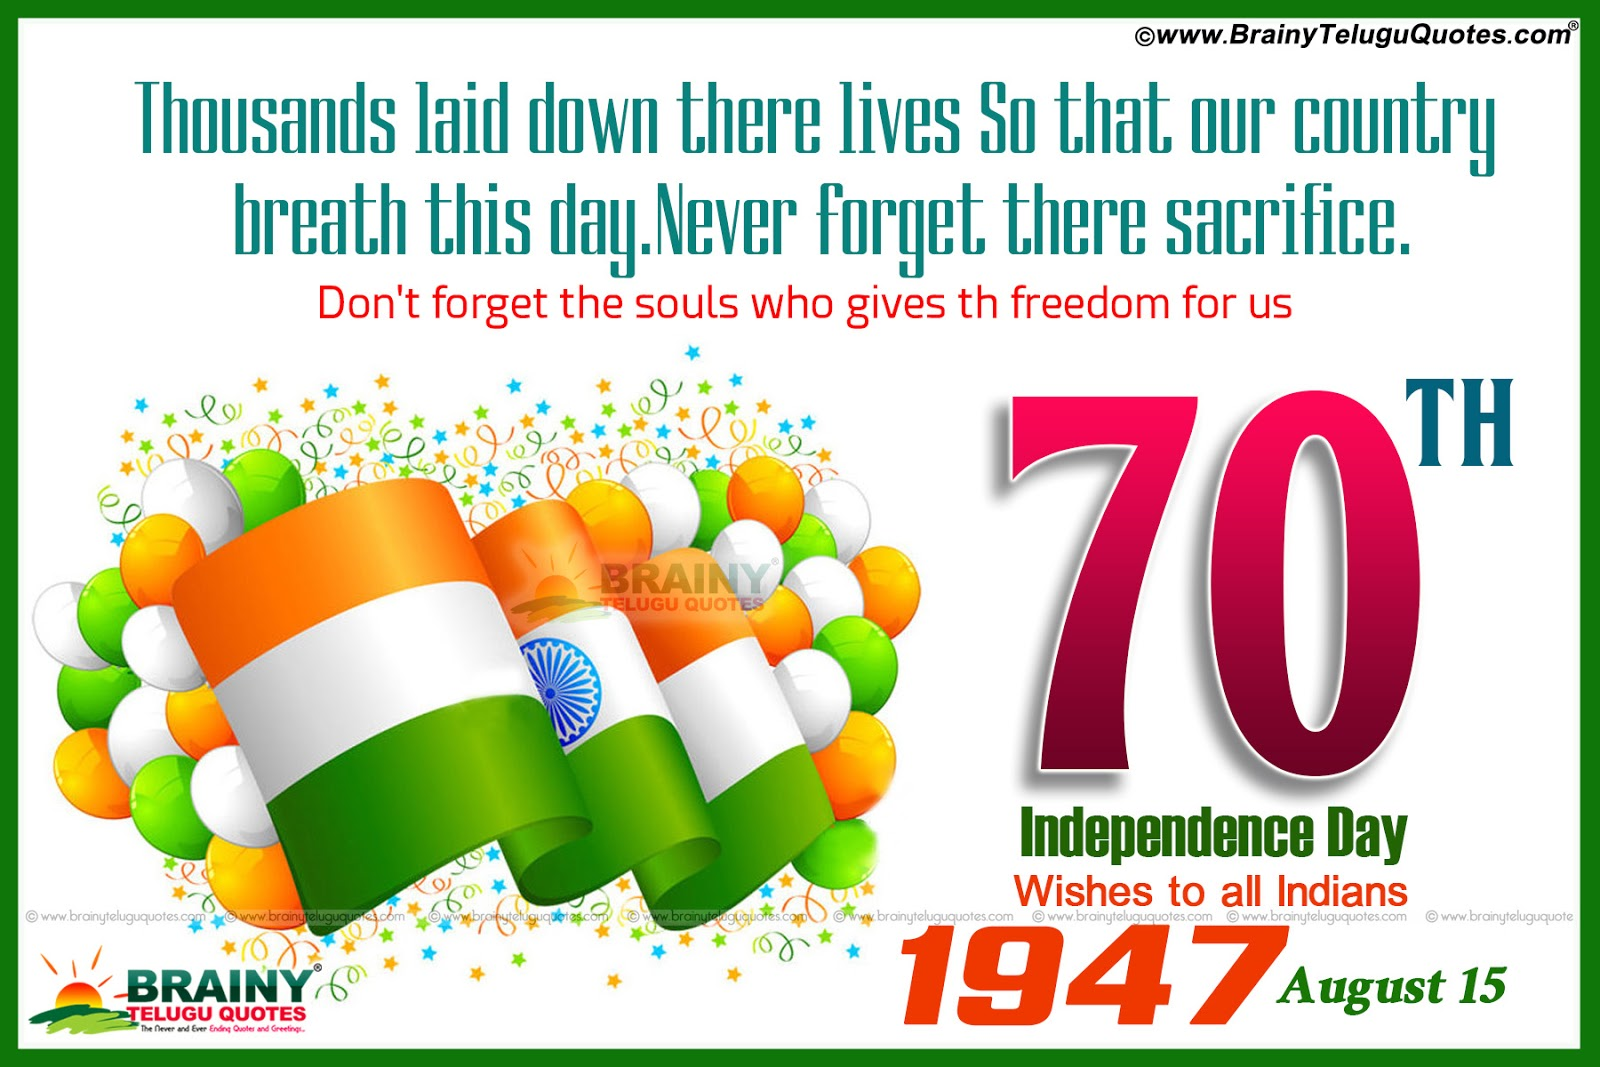 Advance independence day wishes in english language proud to be indian quotes and nice images top independence day images and nice quotes kristyandbryce Gallery